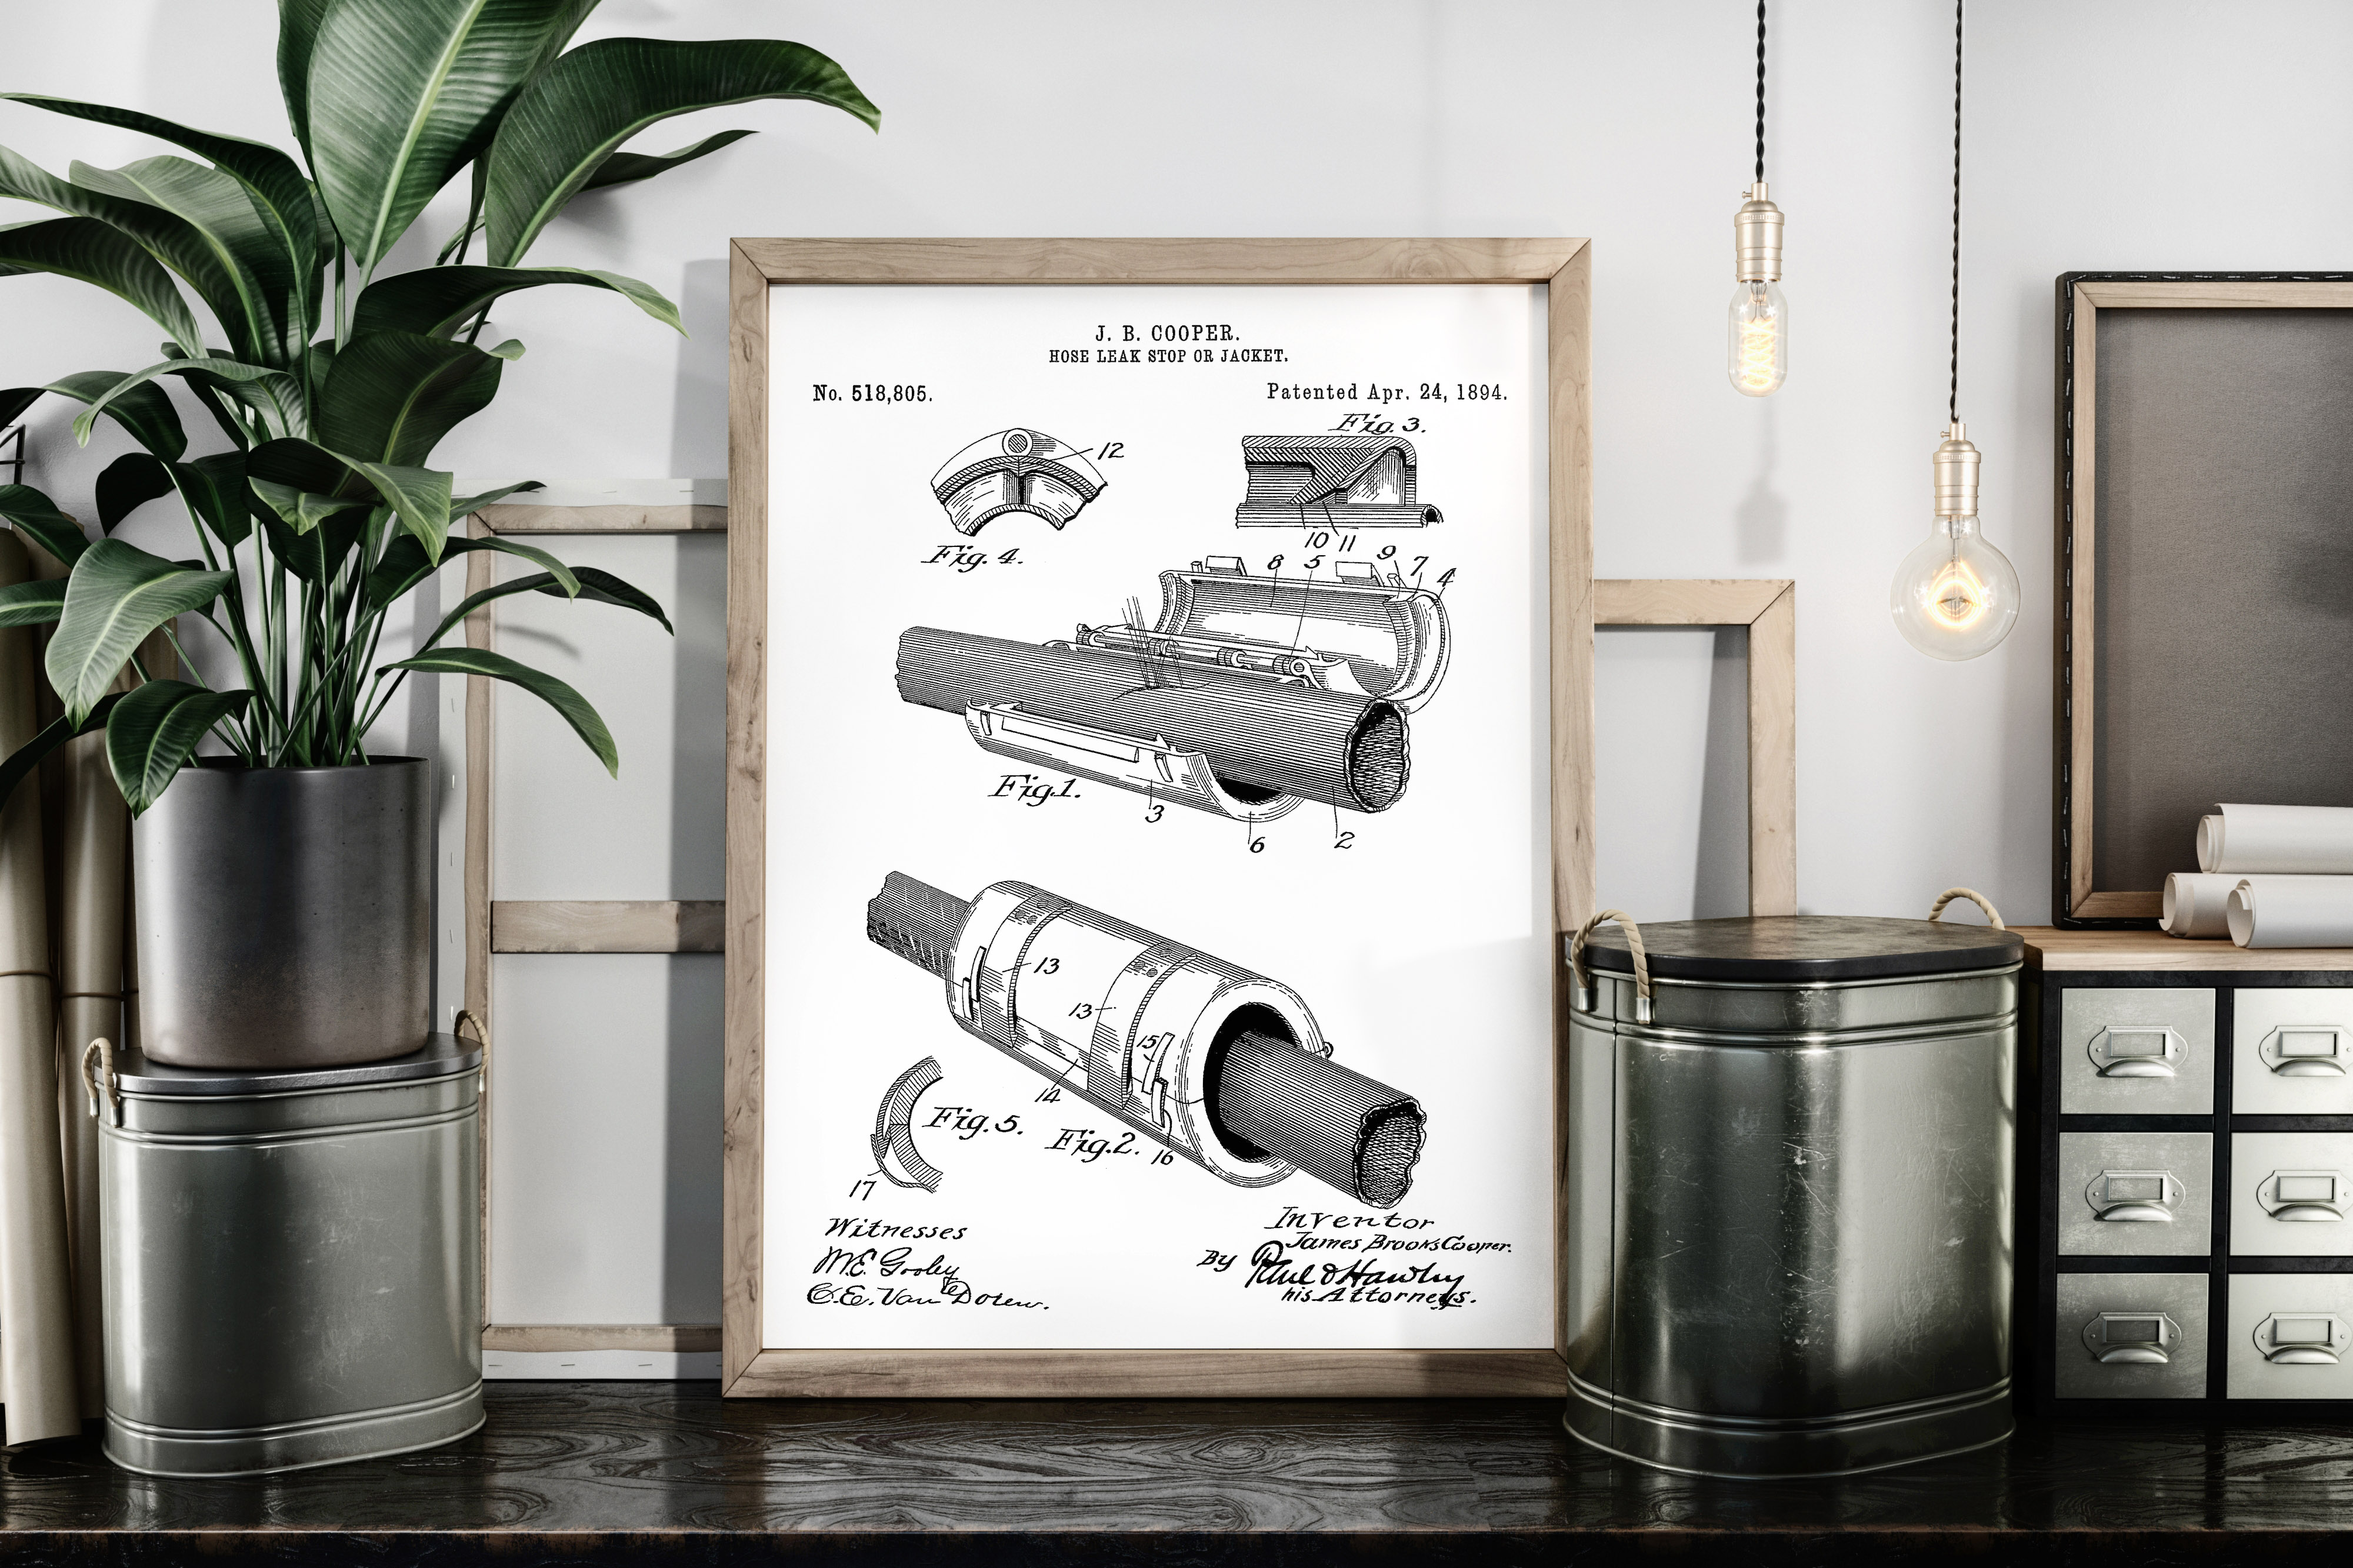 Download Free Hose Leak Stopper Patent Art Poster Graphic By Antique Pixls for Cricut Explore, Silhouette and other cutting machines.